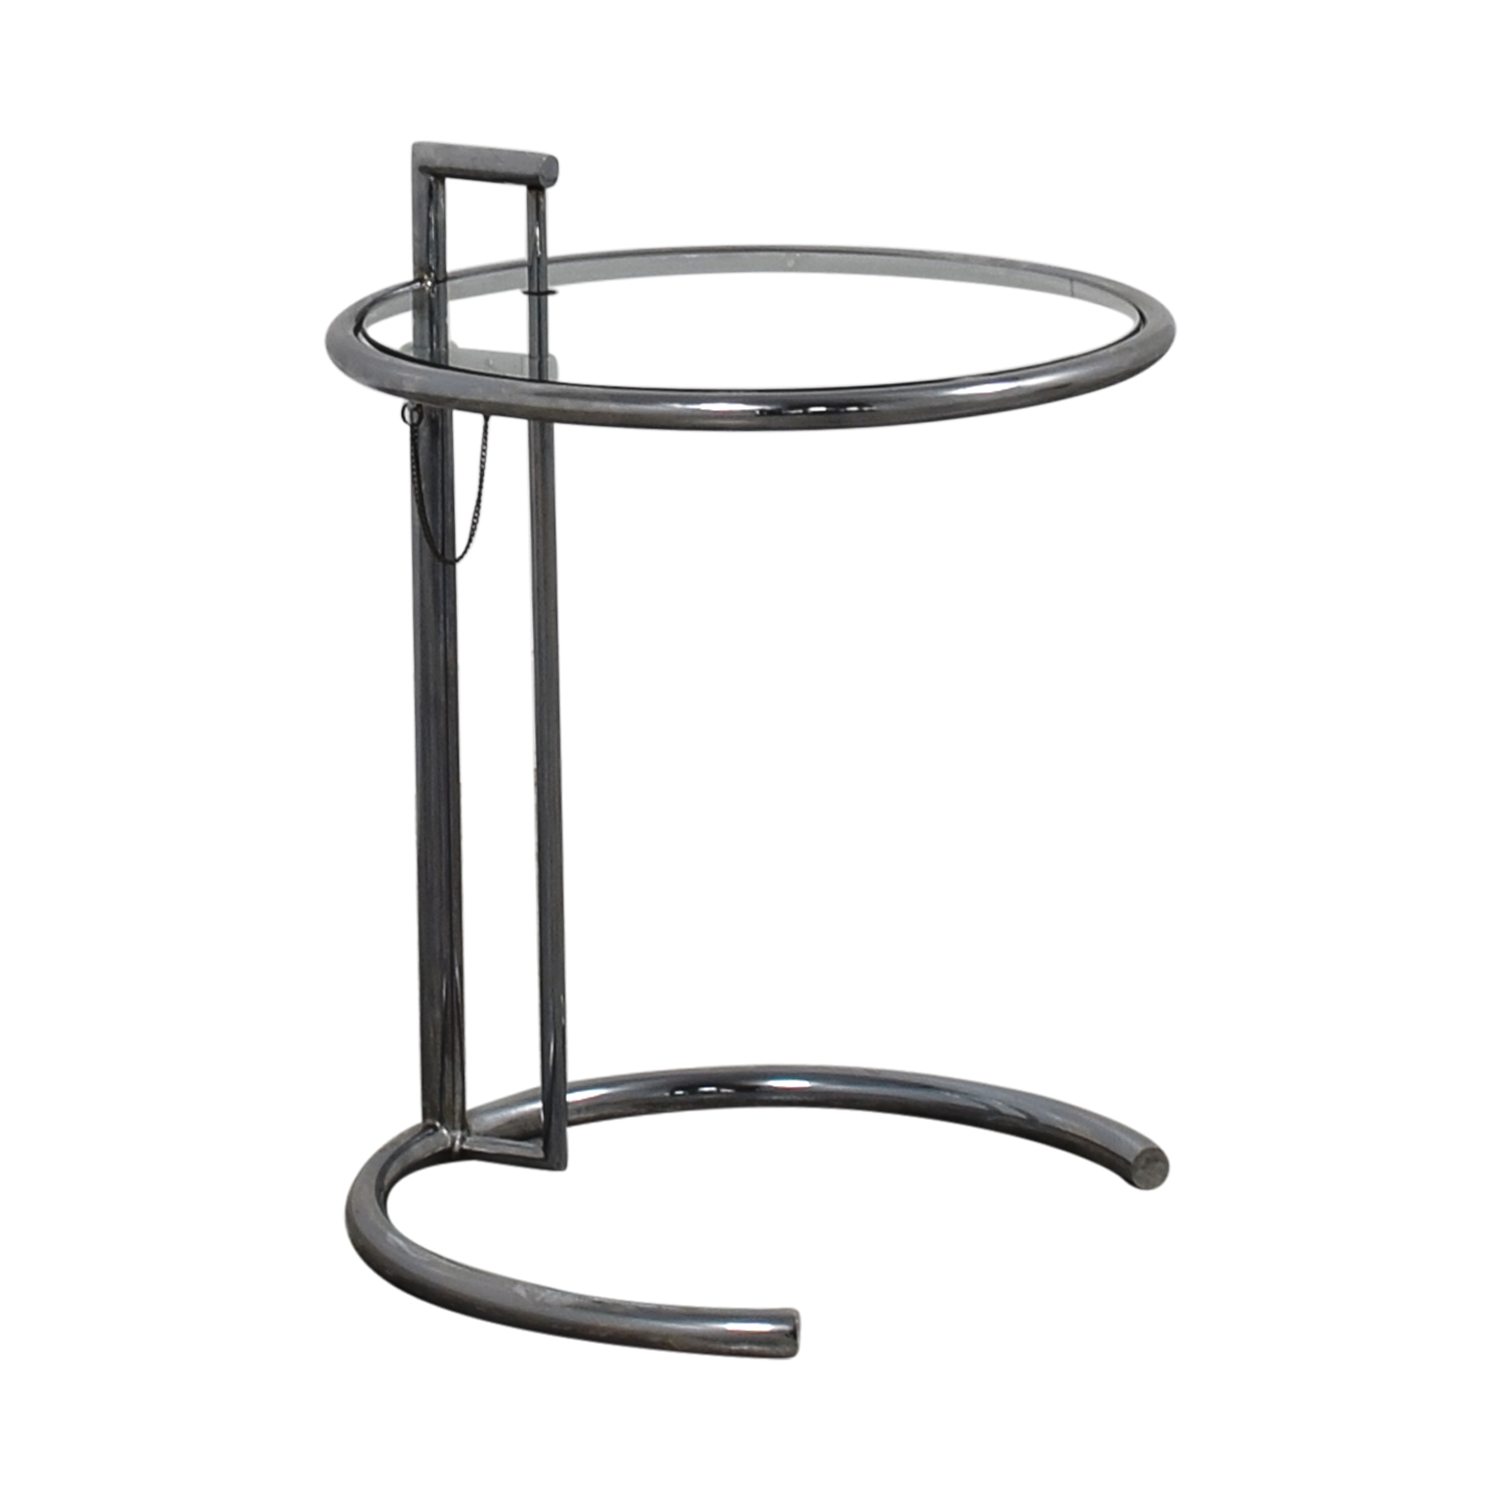 86 off eileen gray eileen gray round glass and metal side table tables. Black Bedroom Furniture Sets. Home Design Ideas